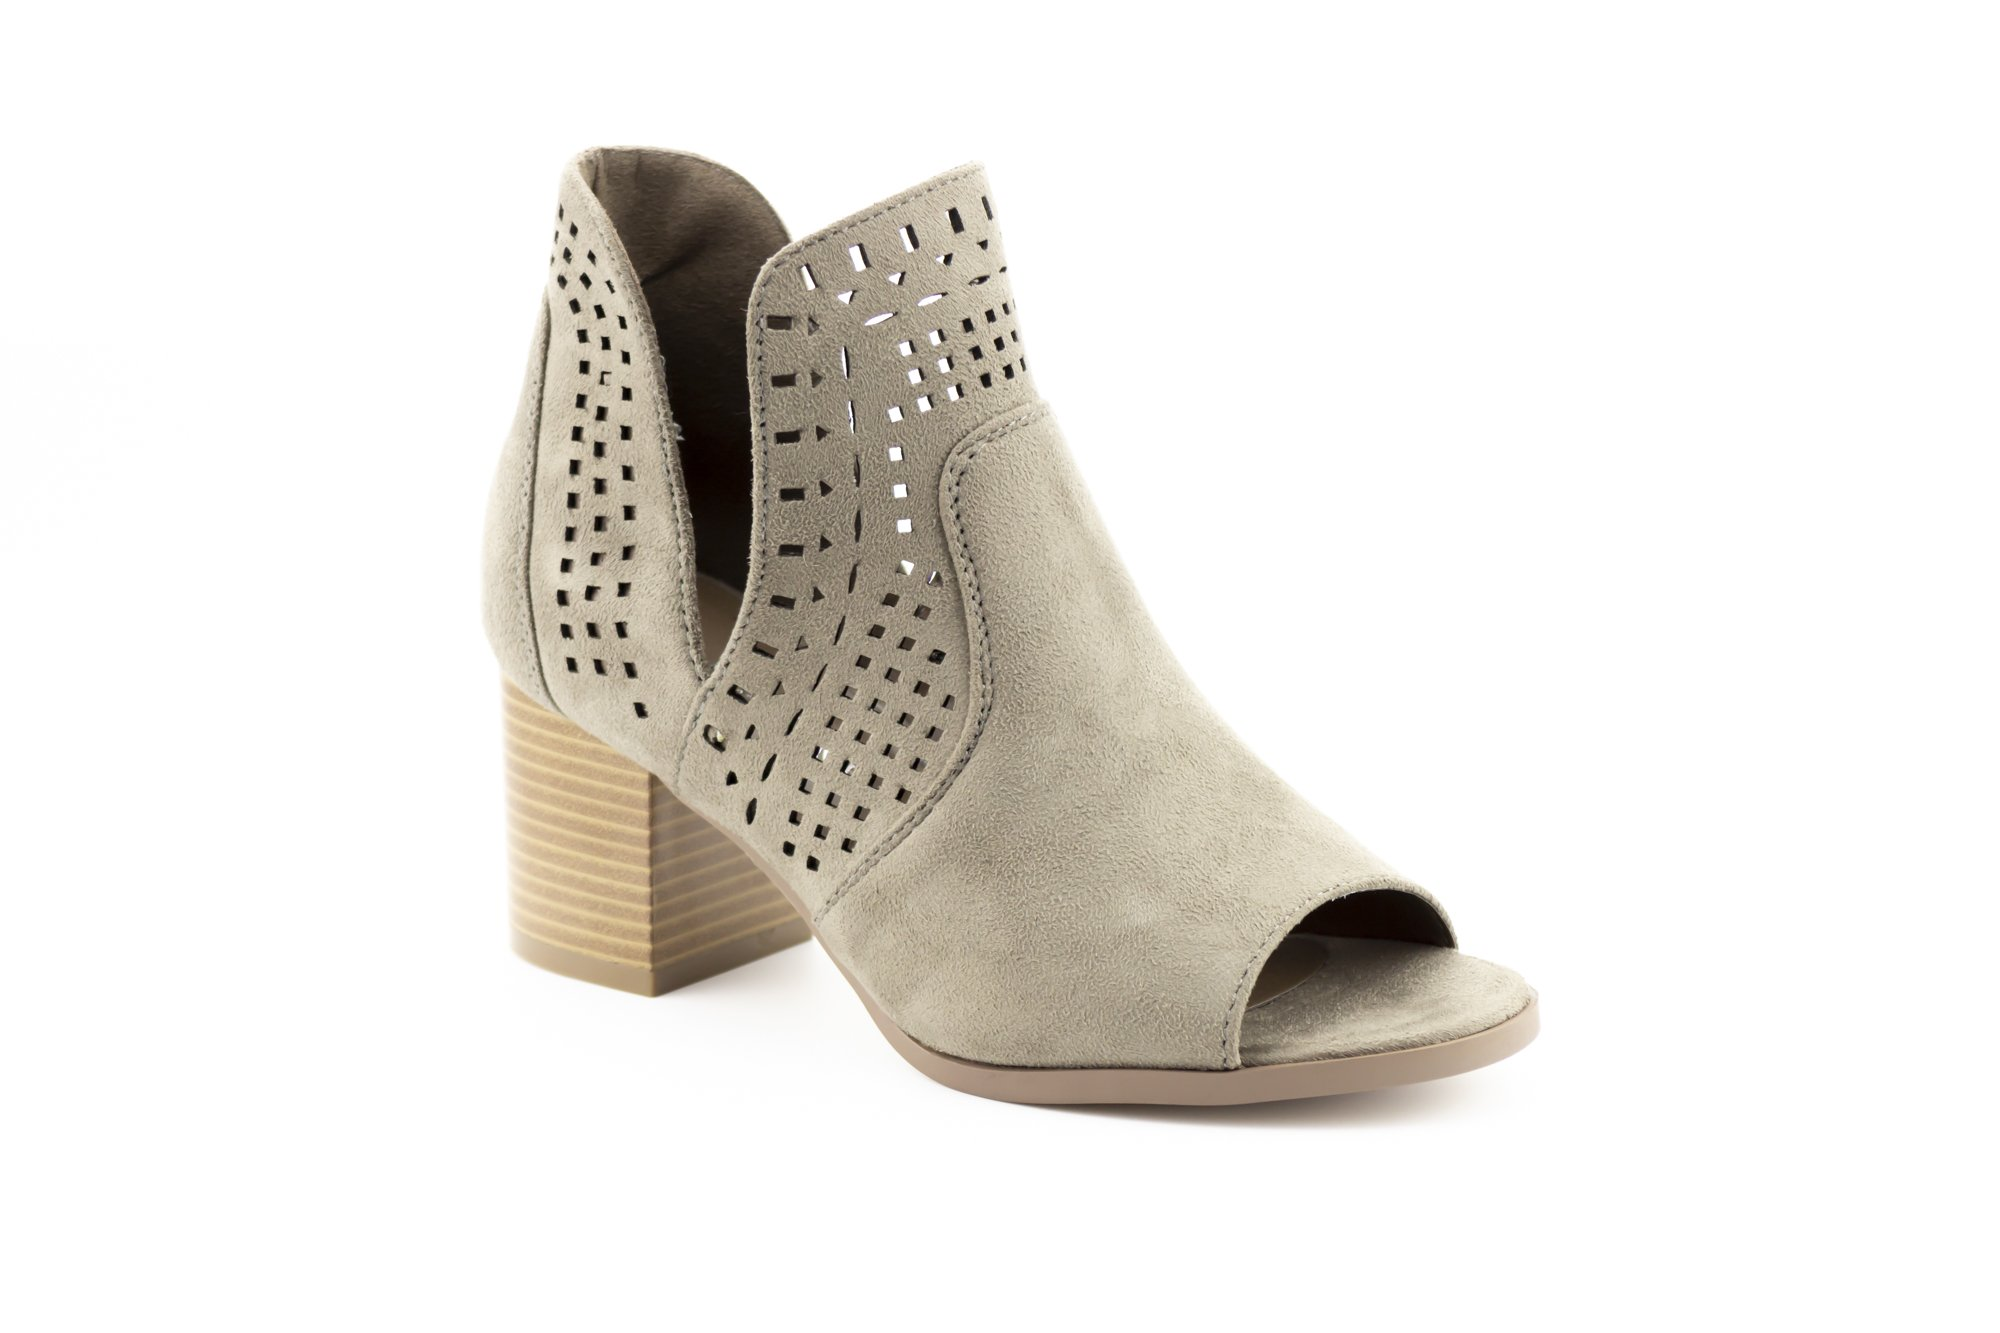 CALICO KIKI AVERY-CK02 Peep Toe Ankle Booties Fashion Cut Out (8.5 US Stone SU)